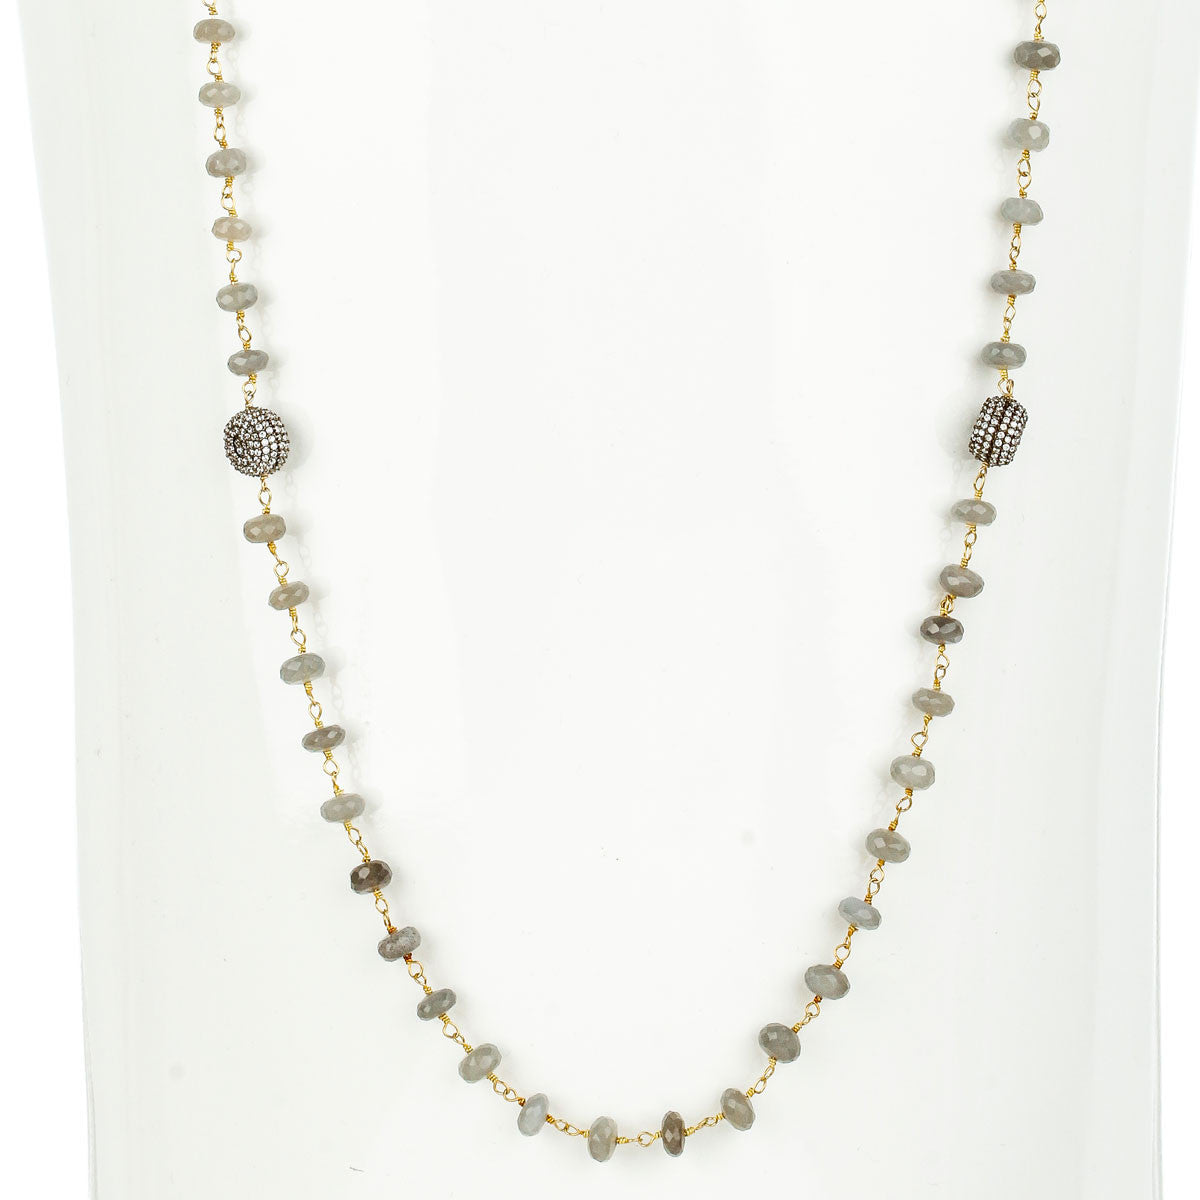 Woodley Long Station Necklace - The Firestone Collection - Fashion Jewelry & Accessories